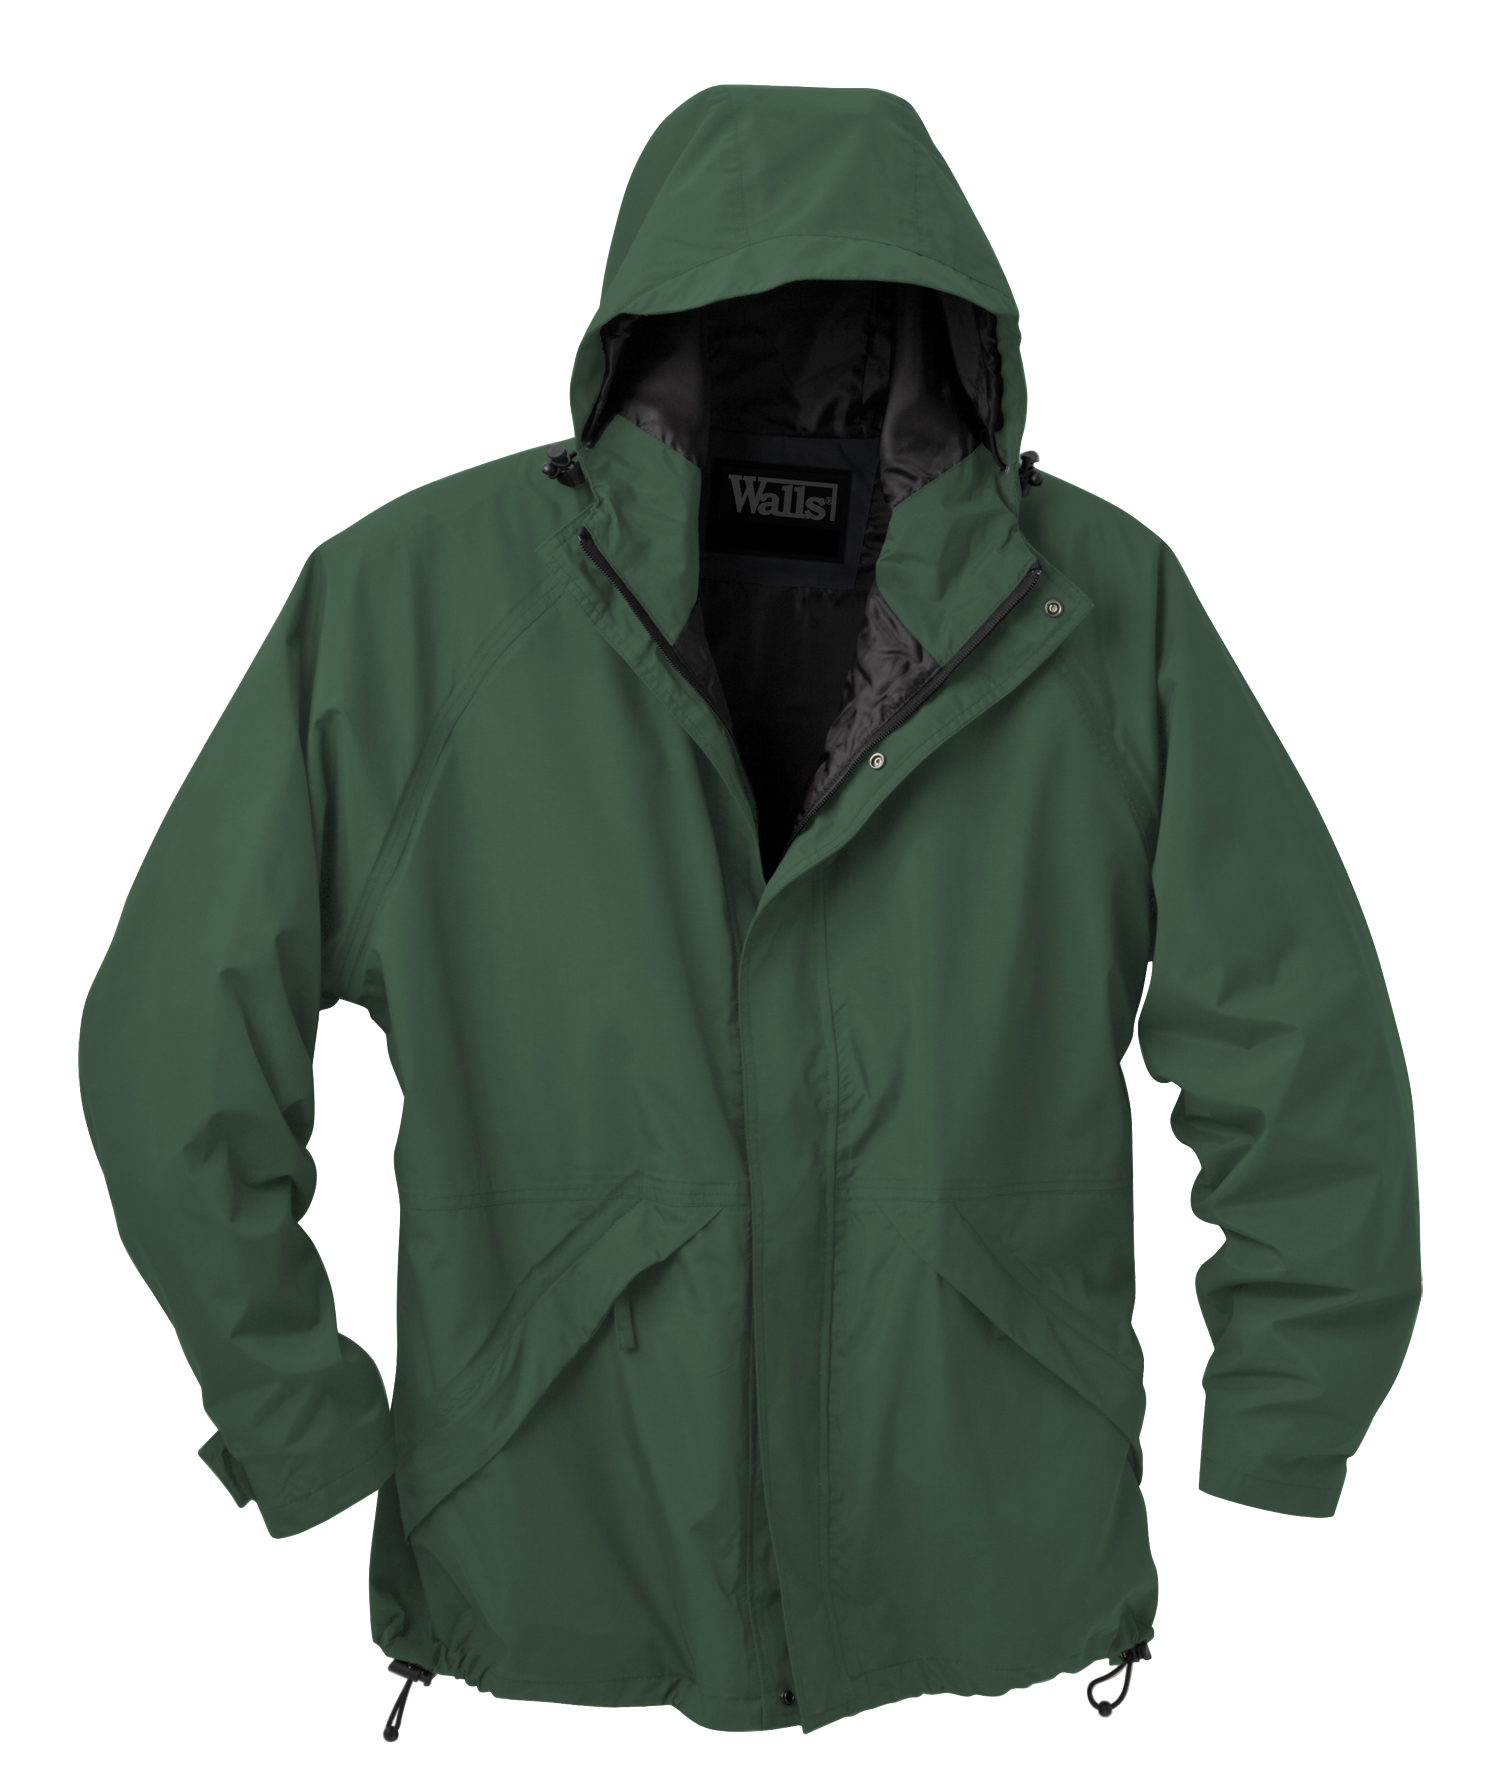 Walls Water-Pruf breathable Rain Jacket Non-Insulated at Sears.com